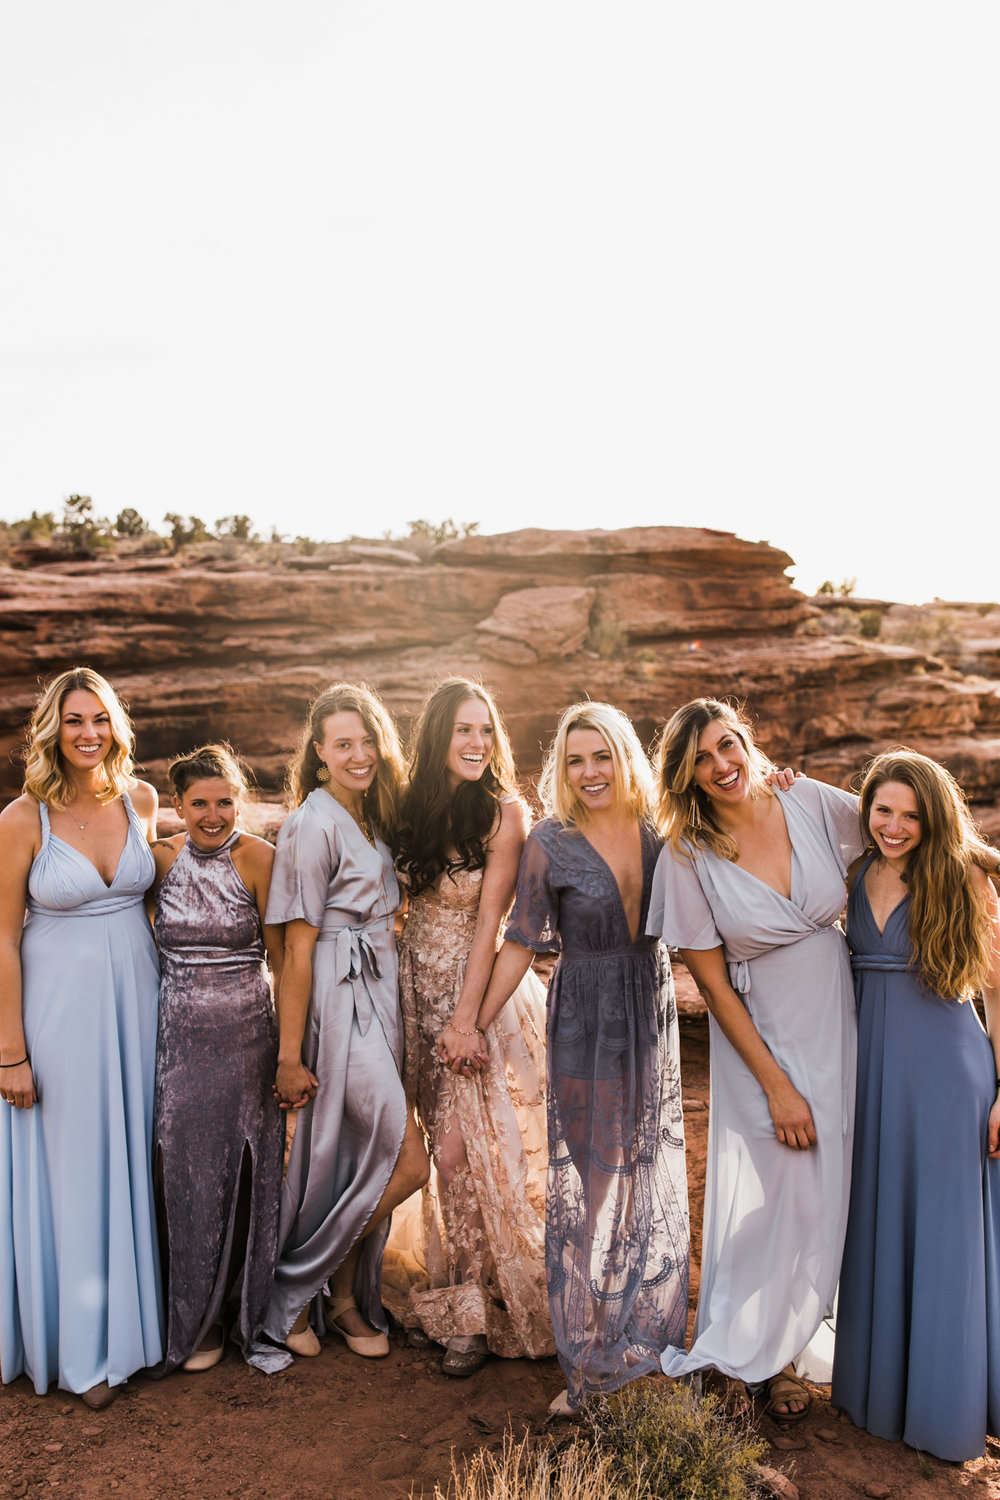 spacenet wedding in moab, utah | destination adventure wedding photographers | the hearnes adventure photography | www.thehearnes.com